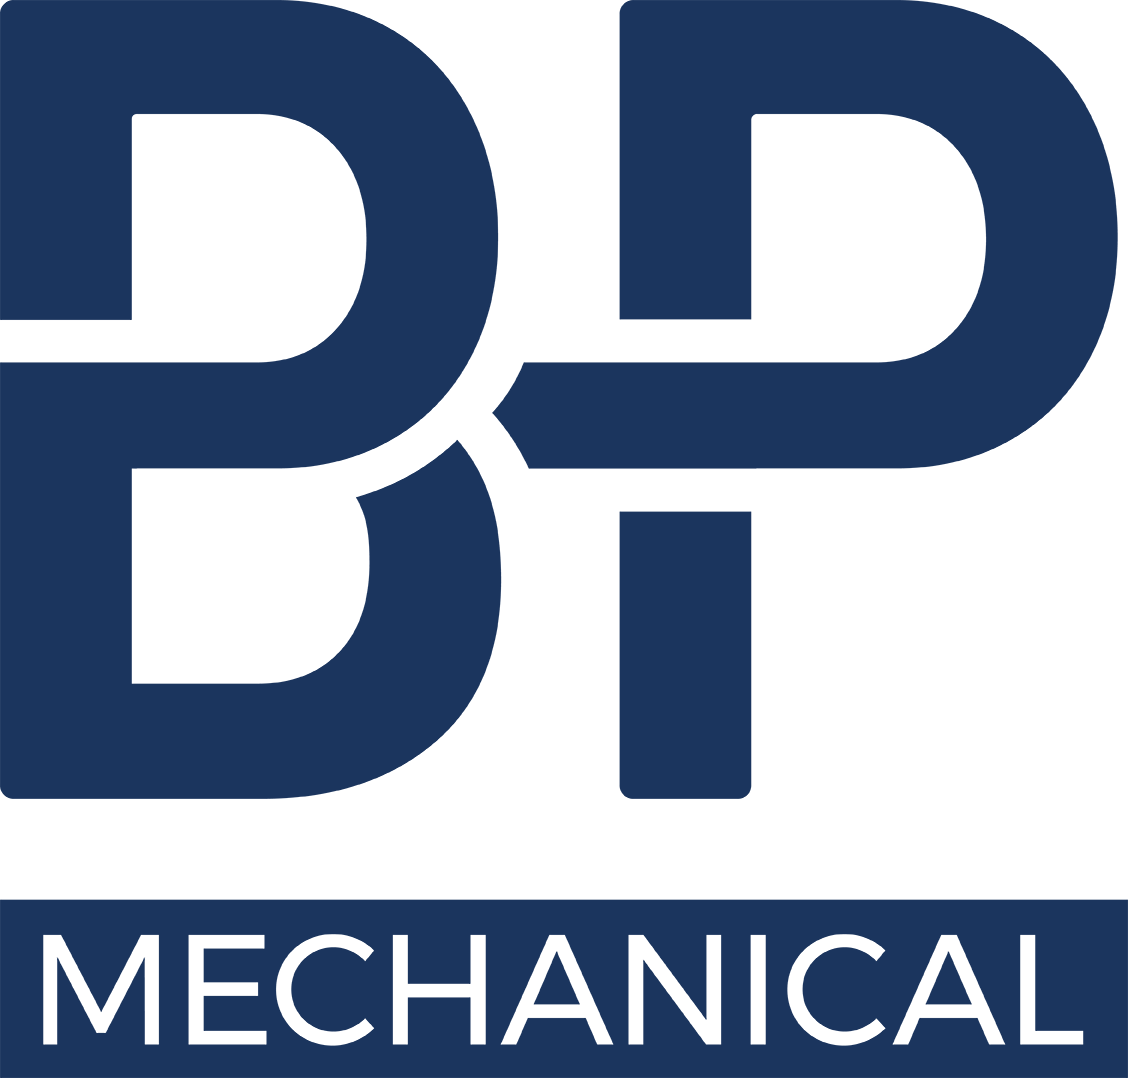 BP Mechanical & Consulting Ltd.